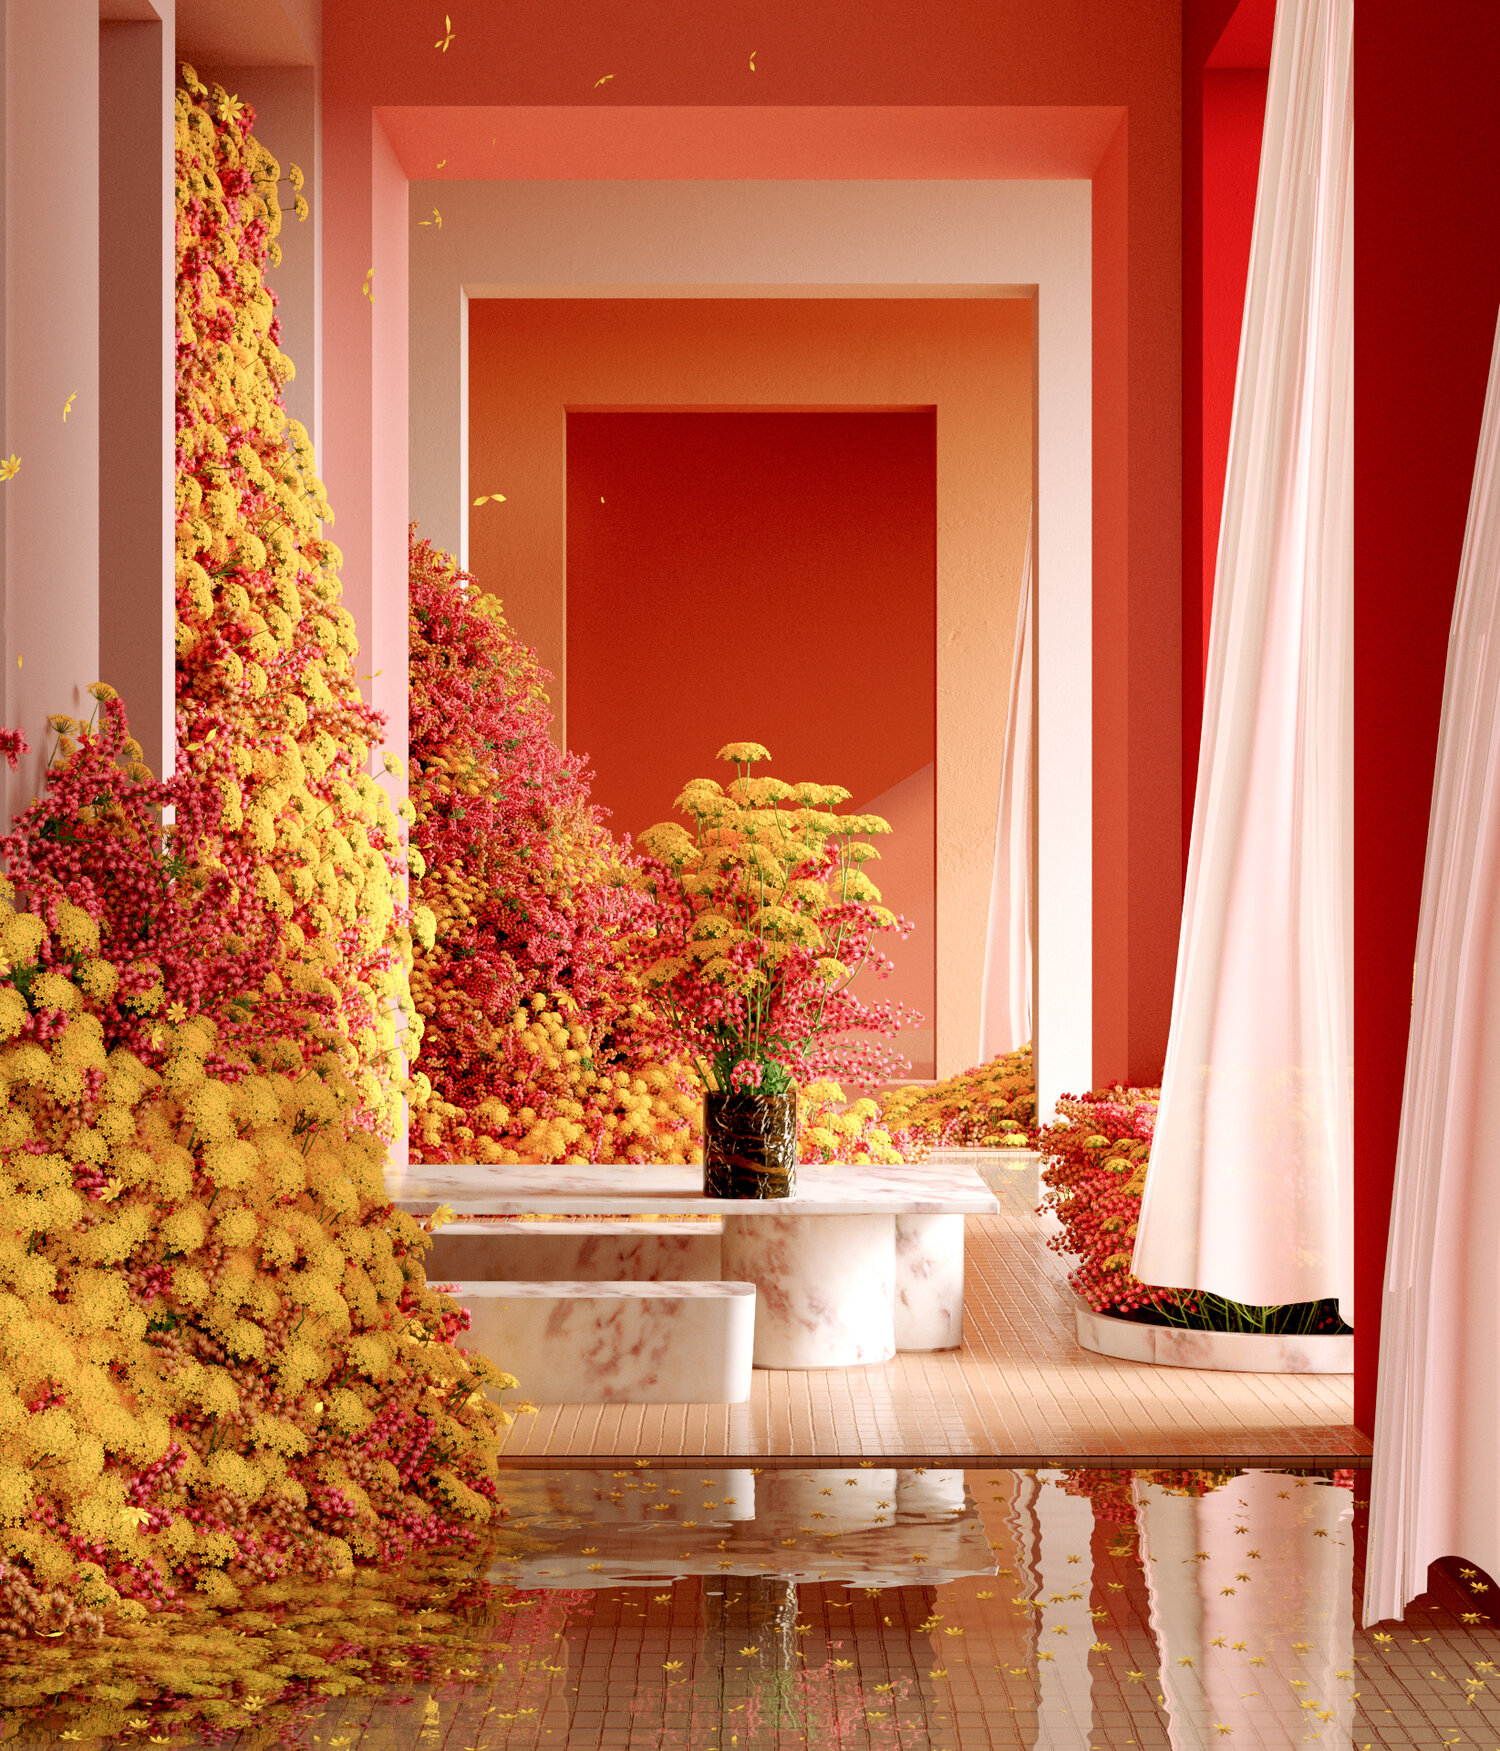 3D-visuals-trends-for-2021-2022-interior-and-exterior-spaces3